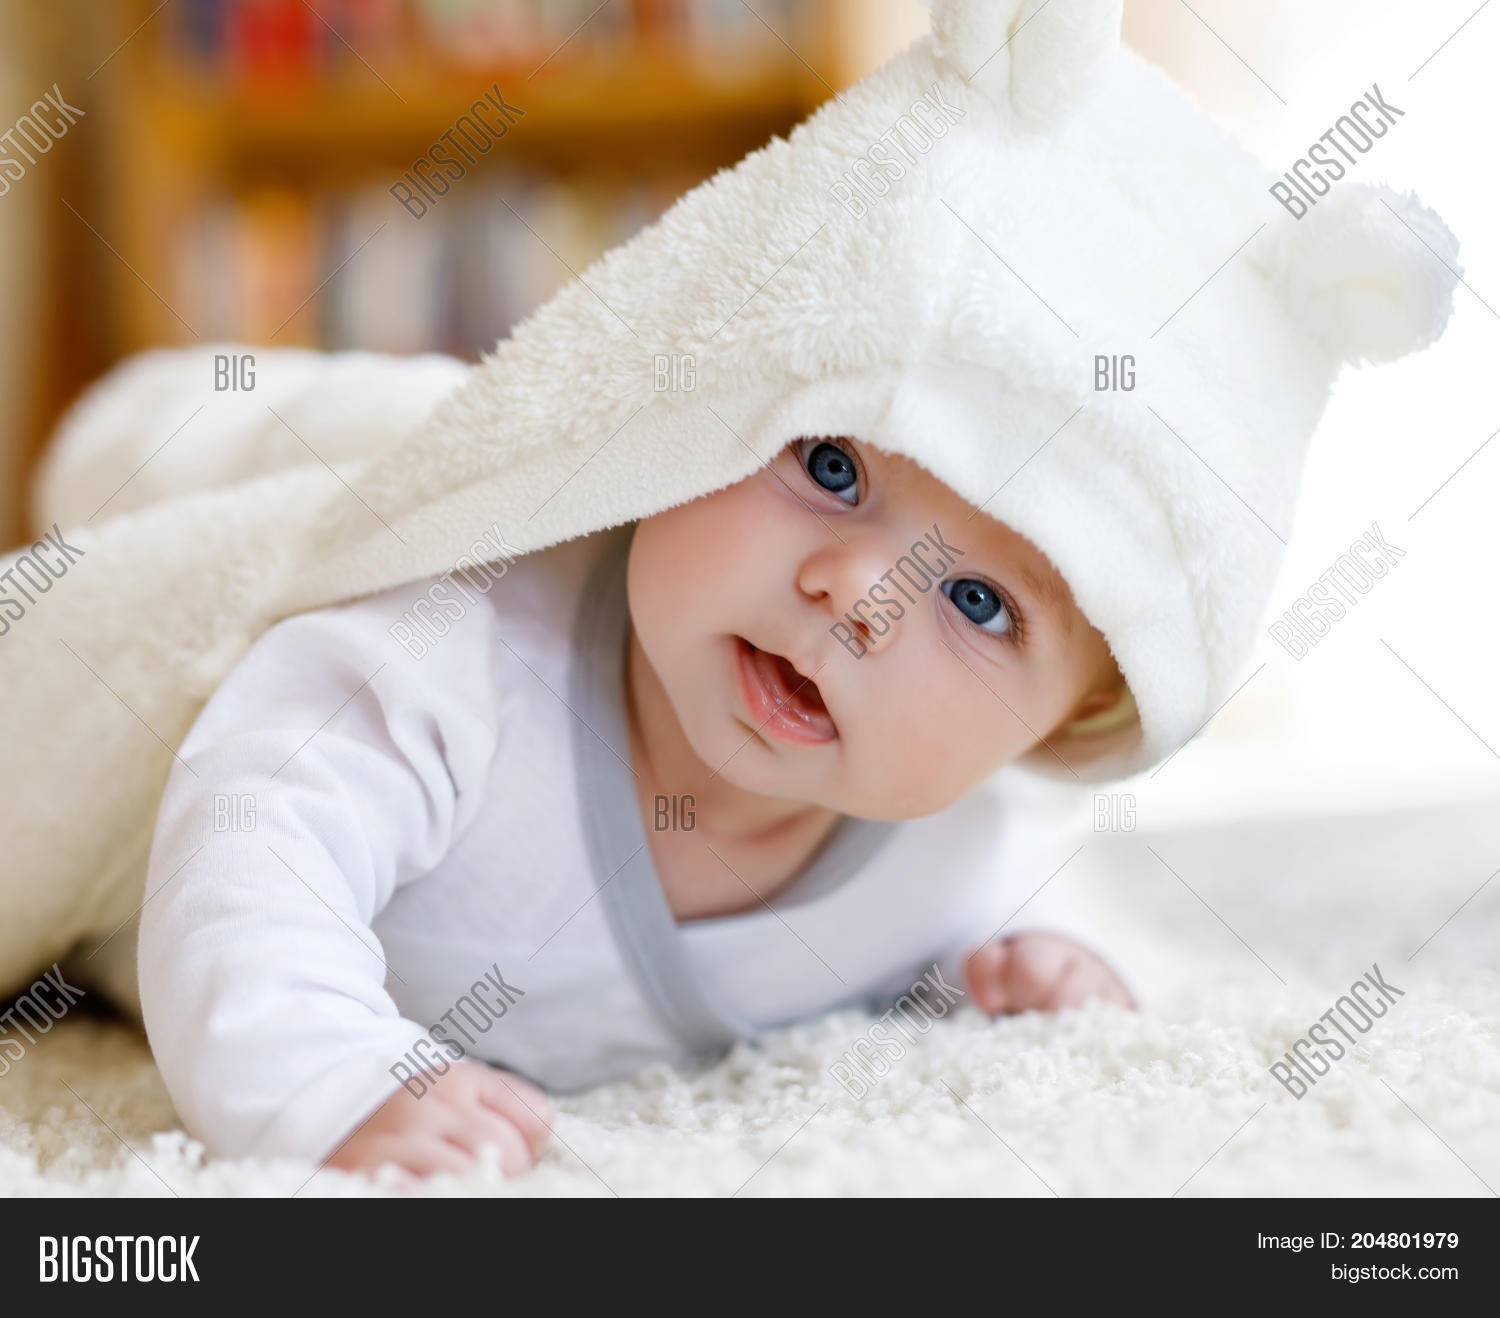 Newborn Babies With Blue Eyes Baby Girl Blue Eyes Image Photo Free Trial Bigstock